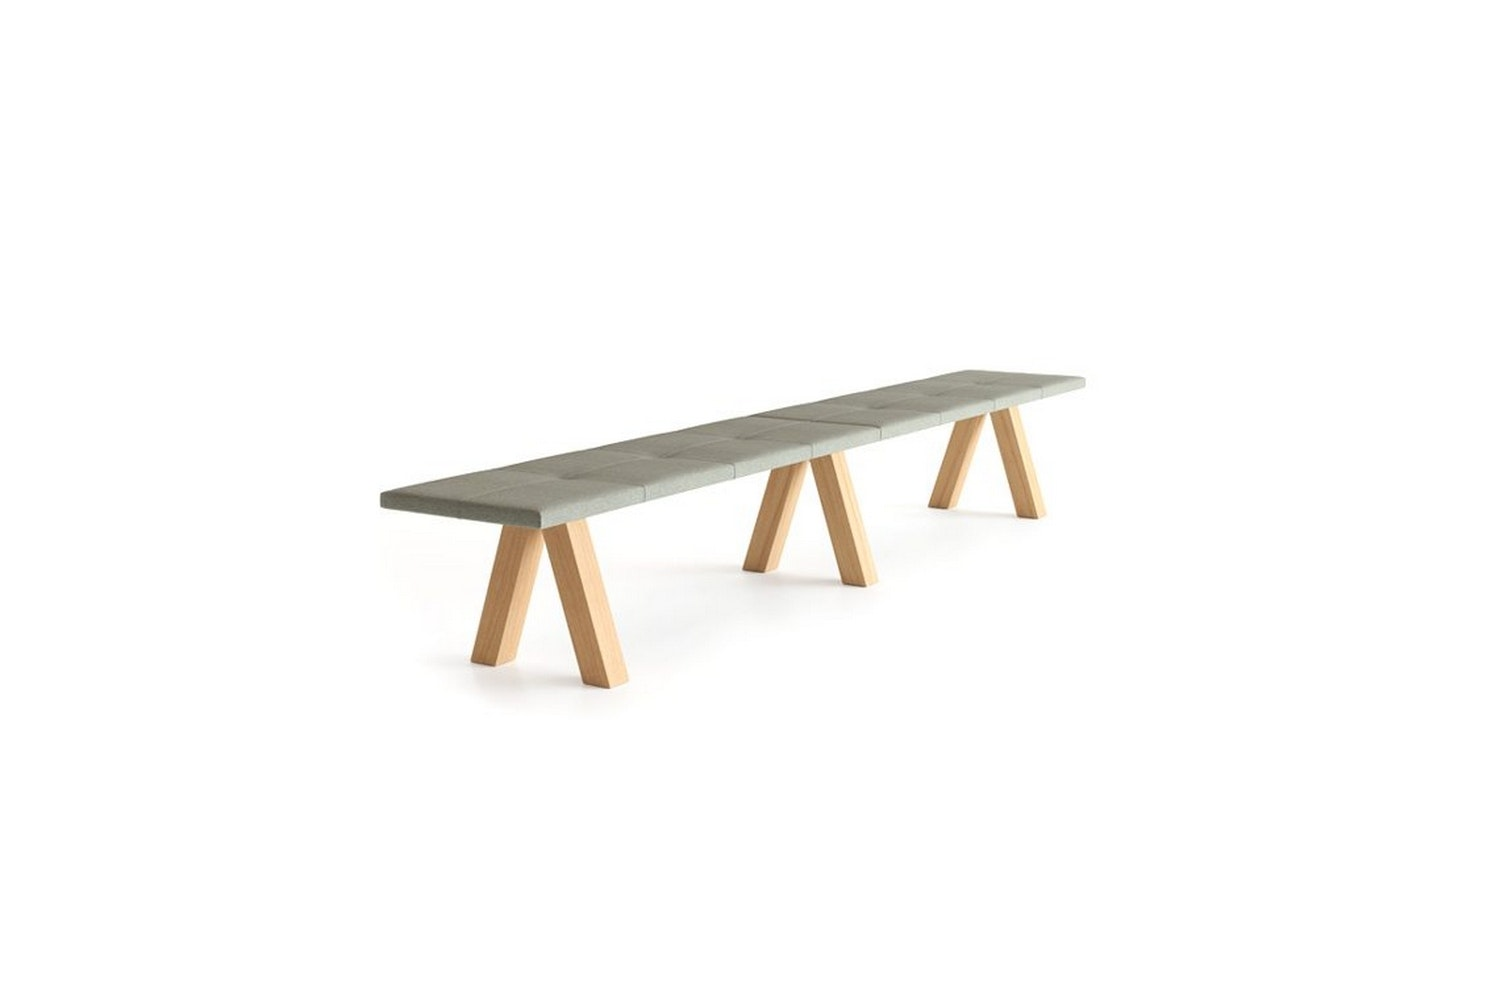 Trestle Bench by John Pawson for Viccarbe